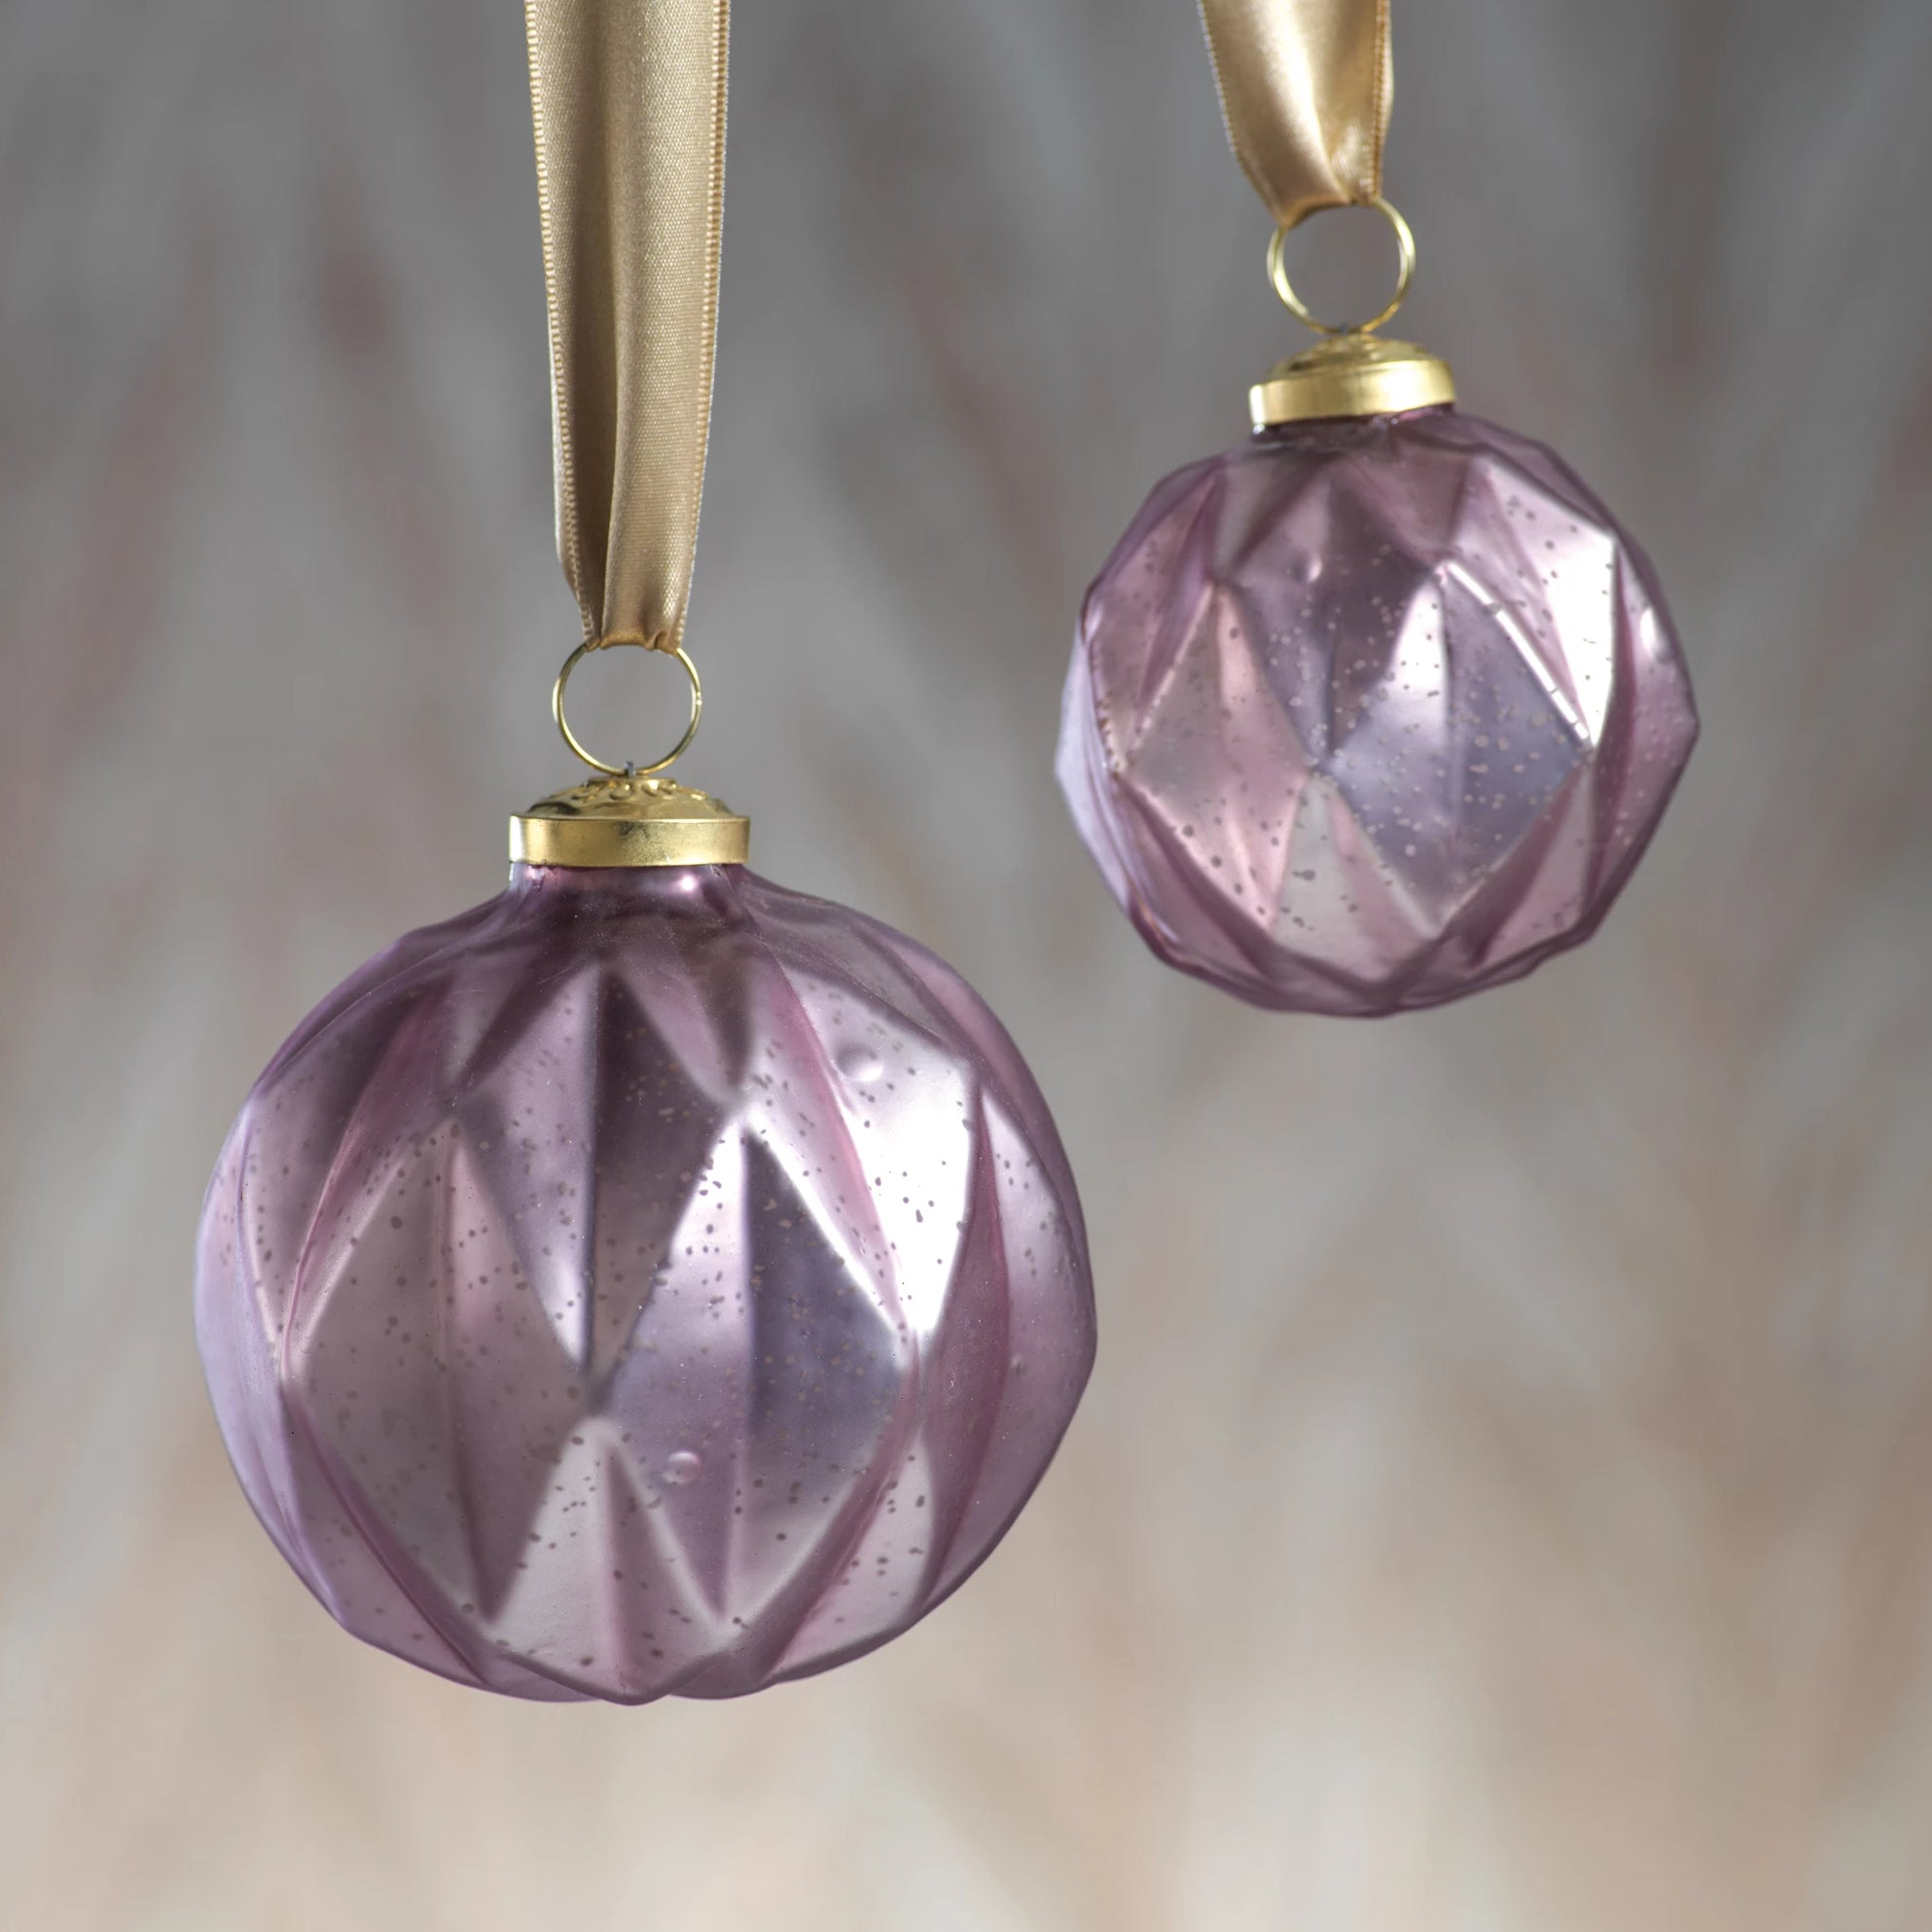 Faceted Glass Ornaments - Pink - CARLYLE AVENUE